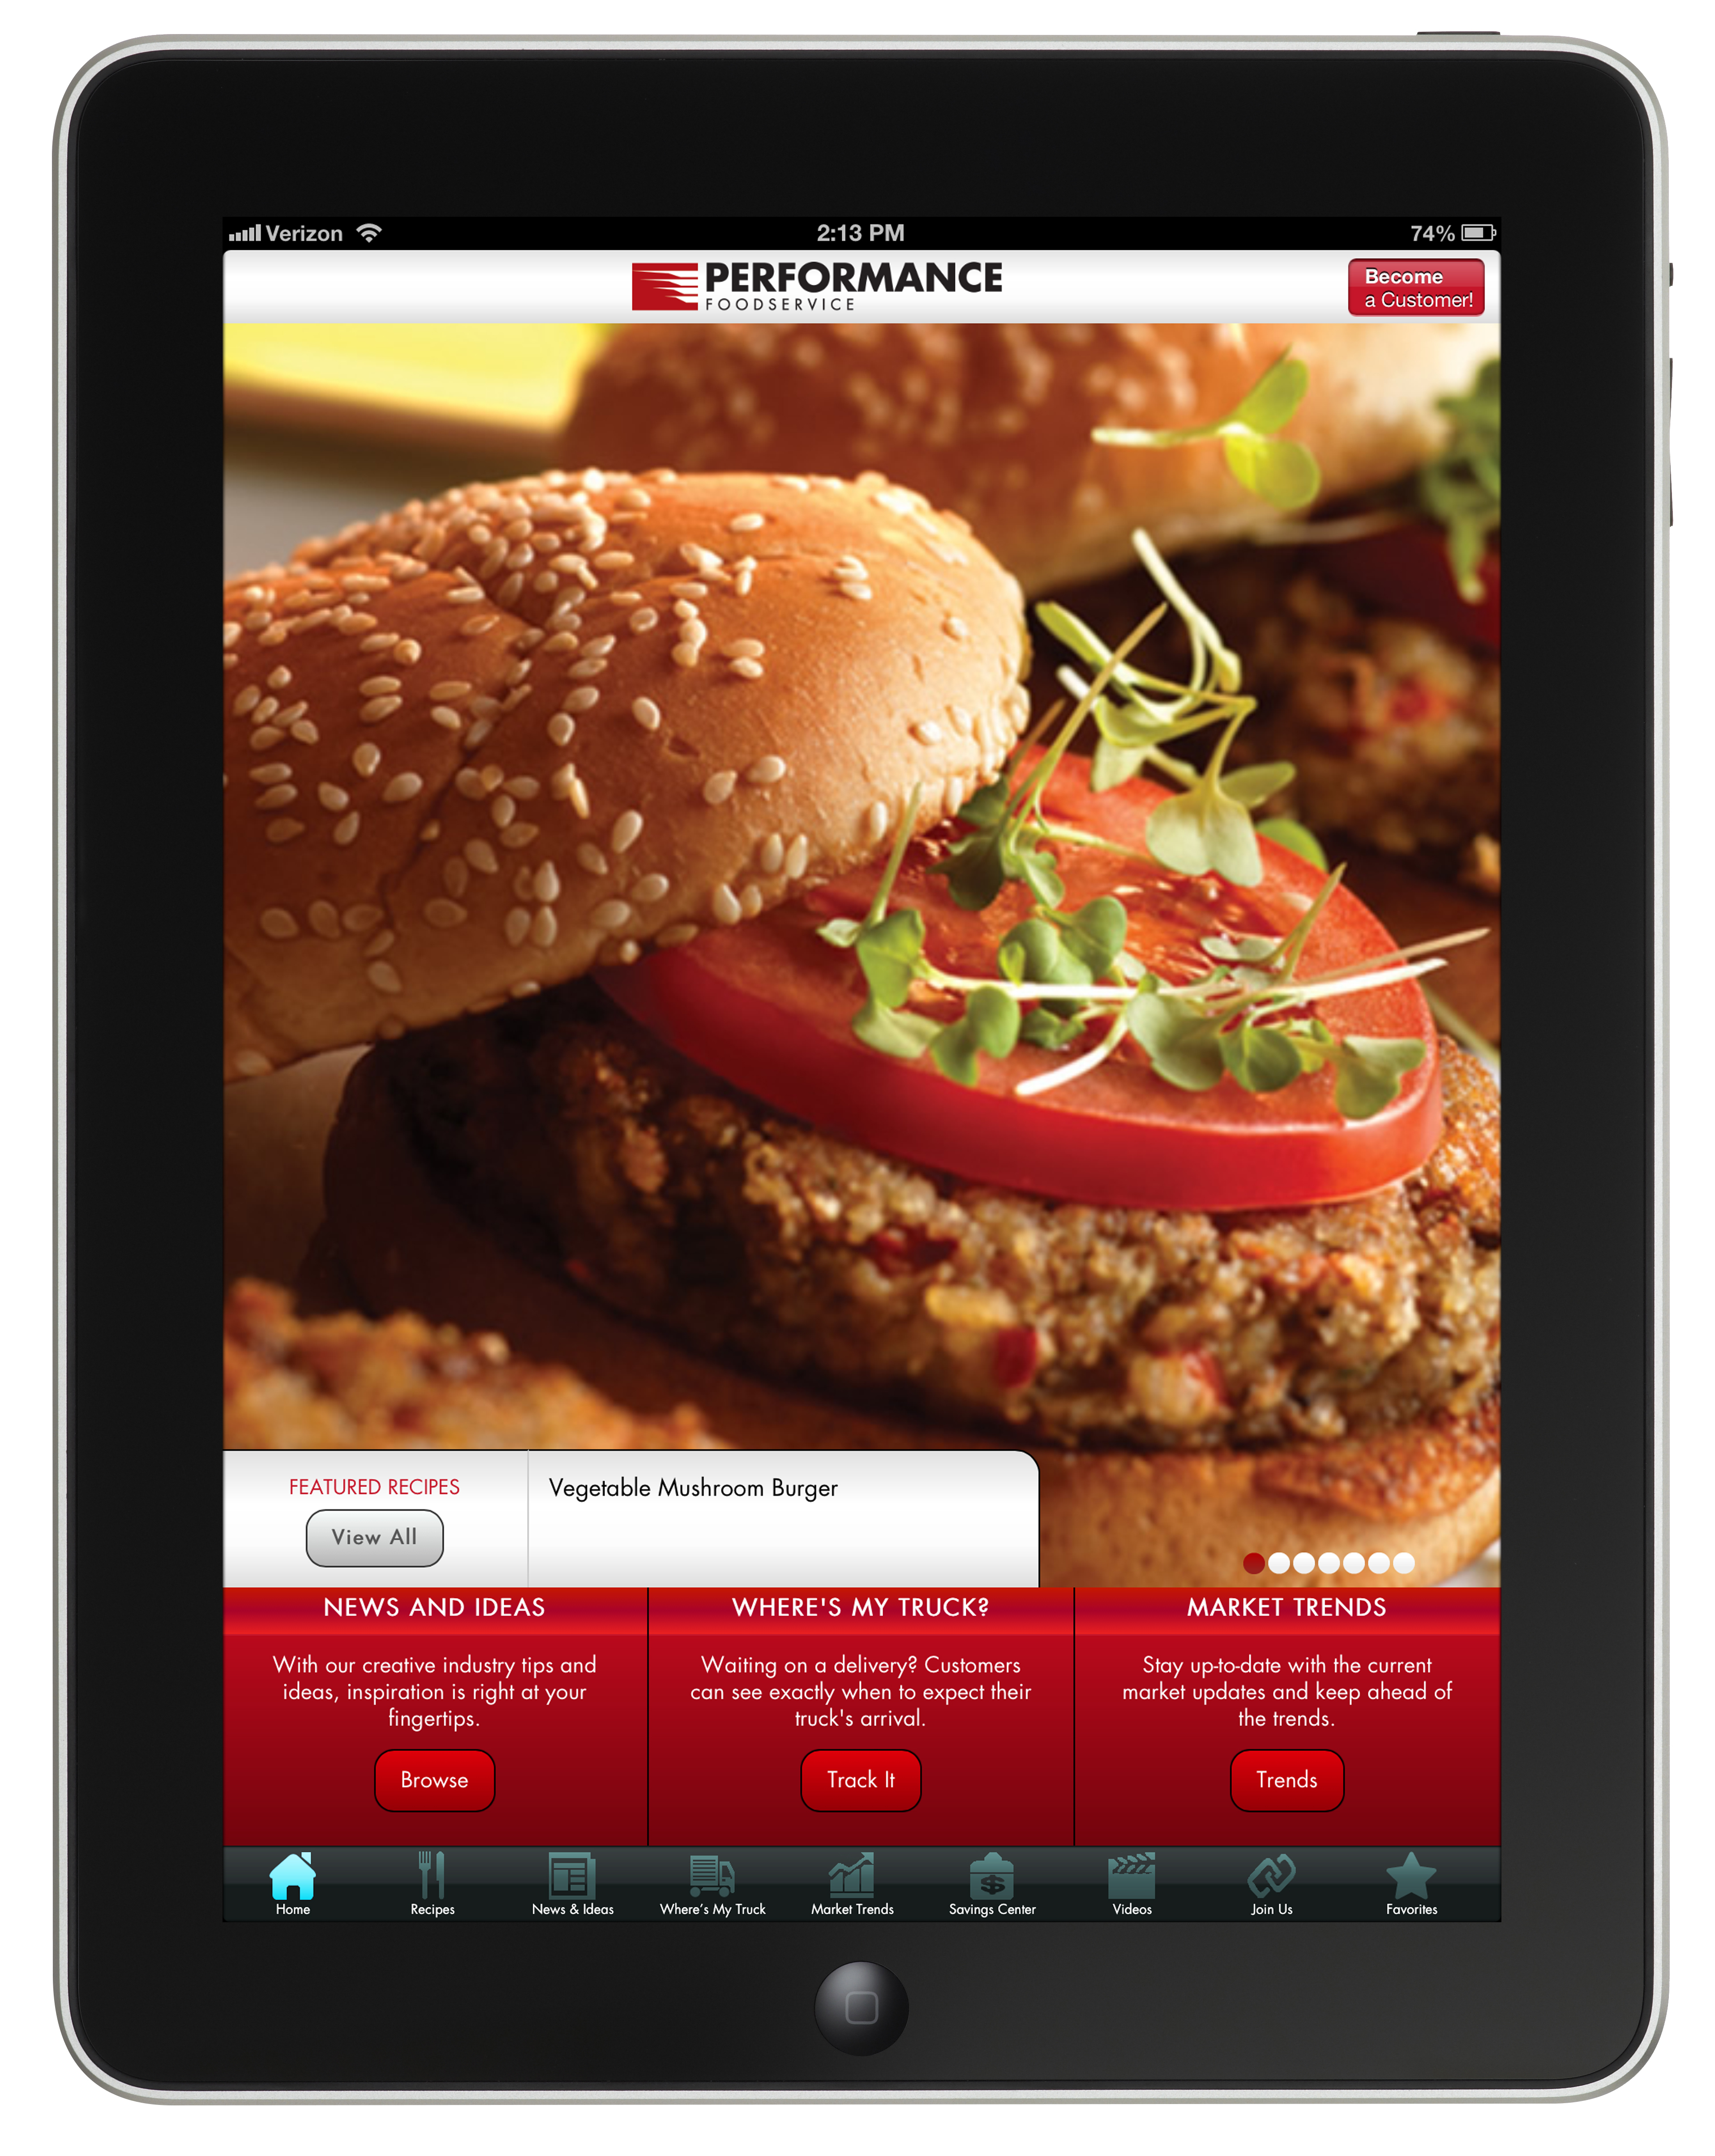 New ios app from performance foodservice enables customers to track new ios app from performance foodservice enables customers to track deliveries discover new recipes and review market trends business wire forumfinder Image collections